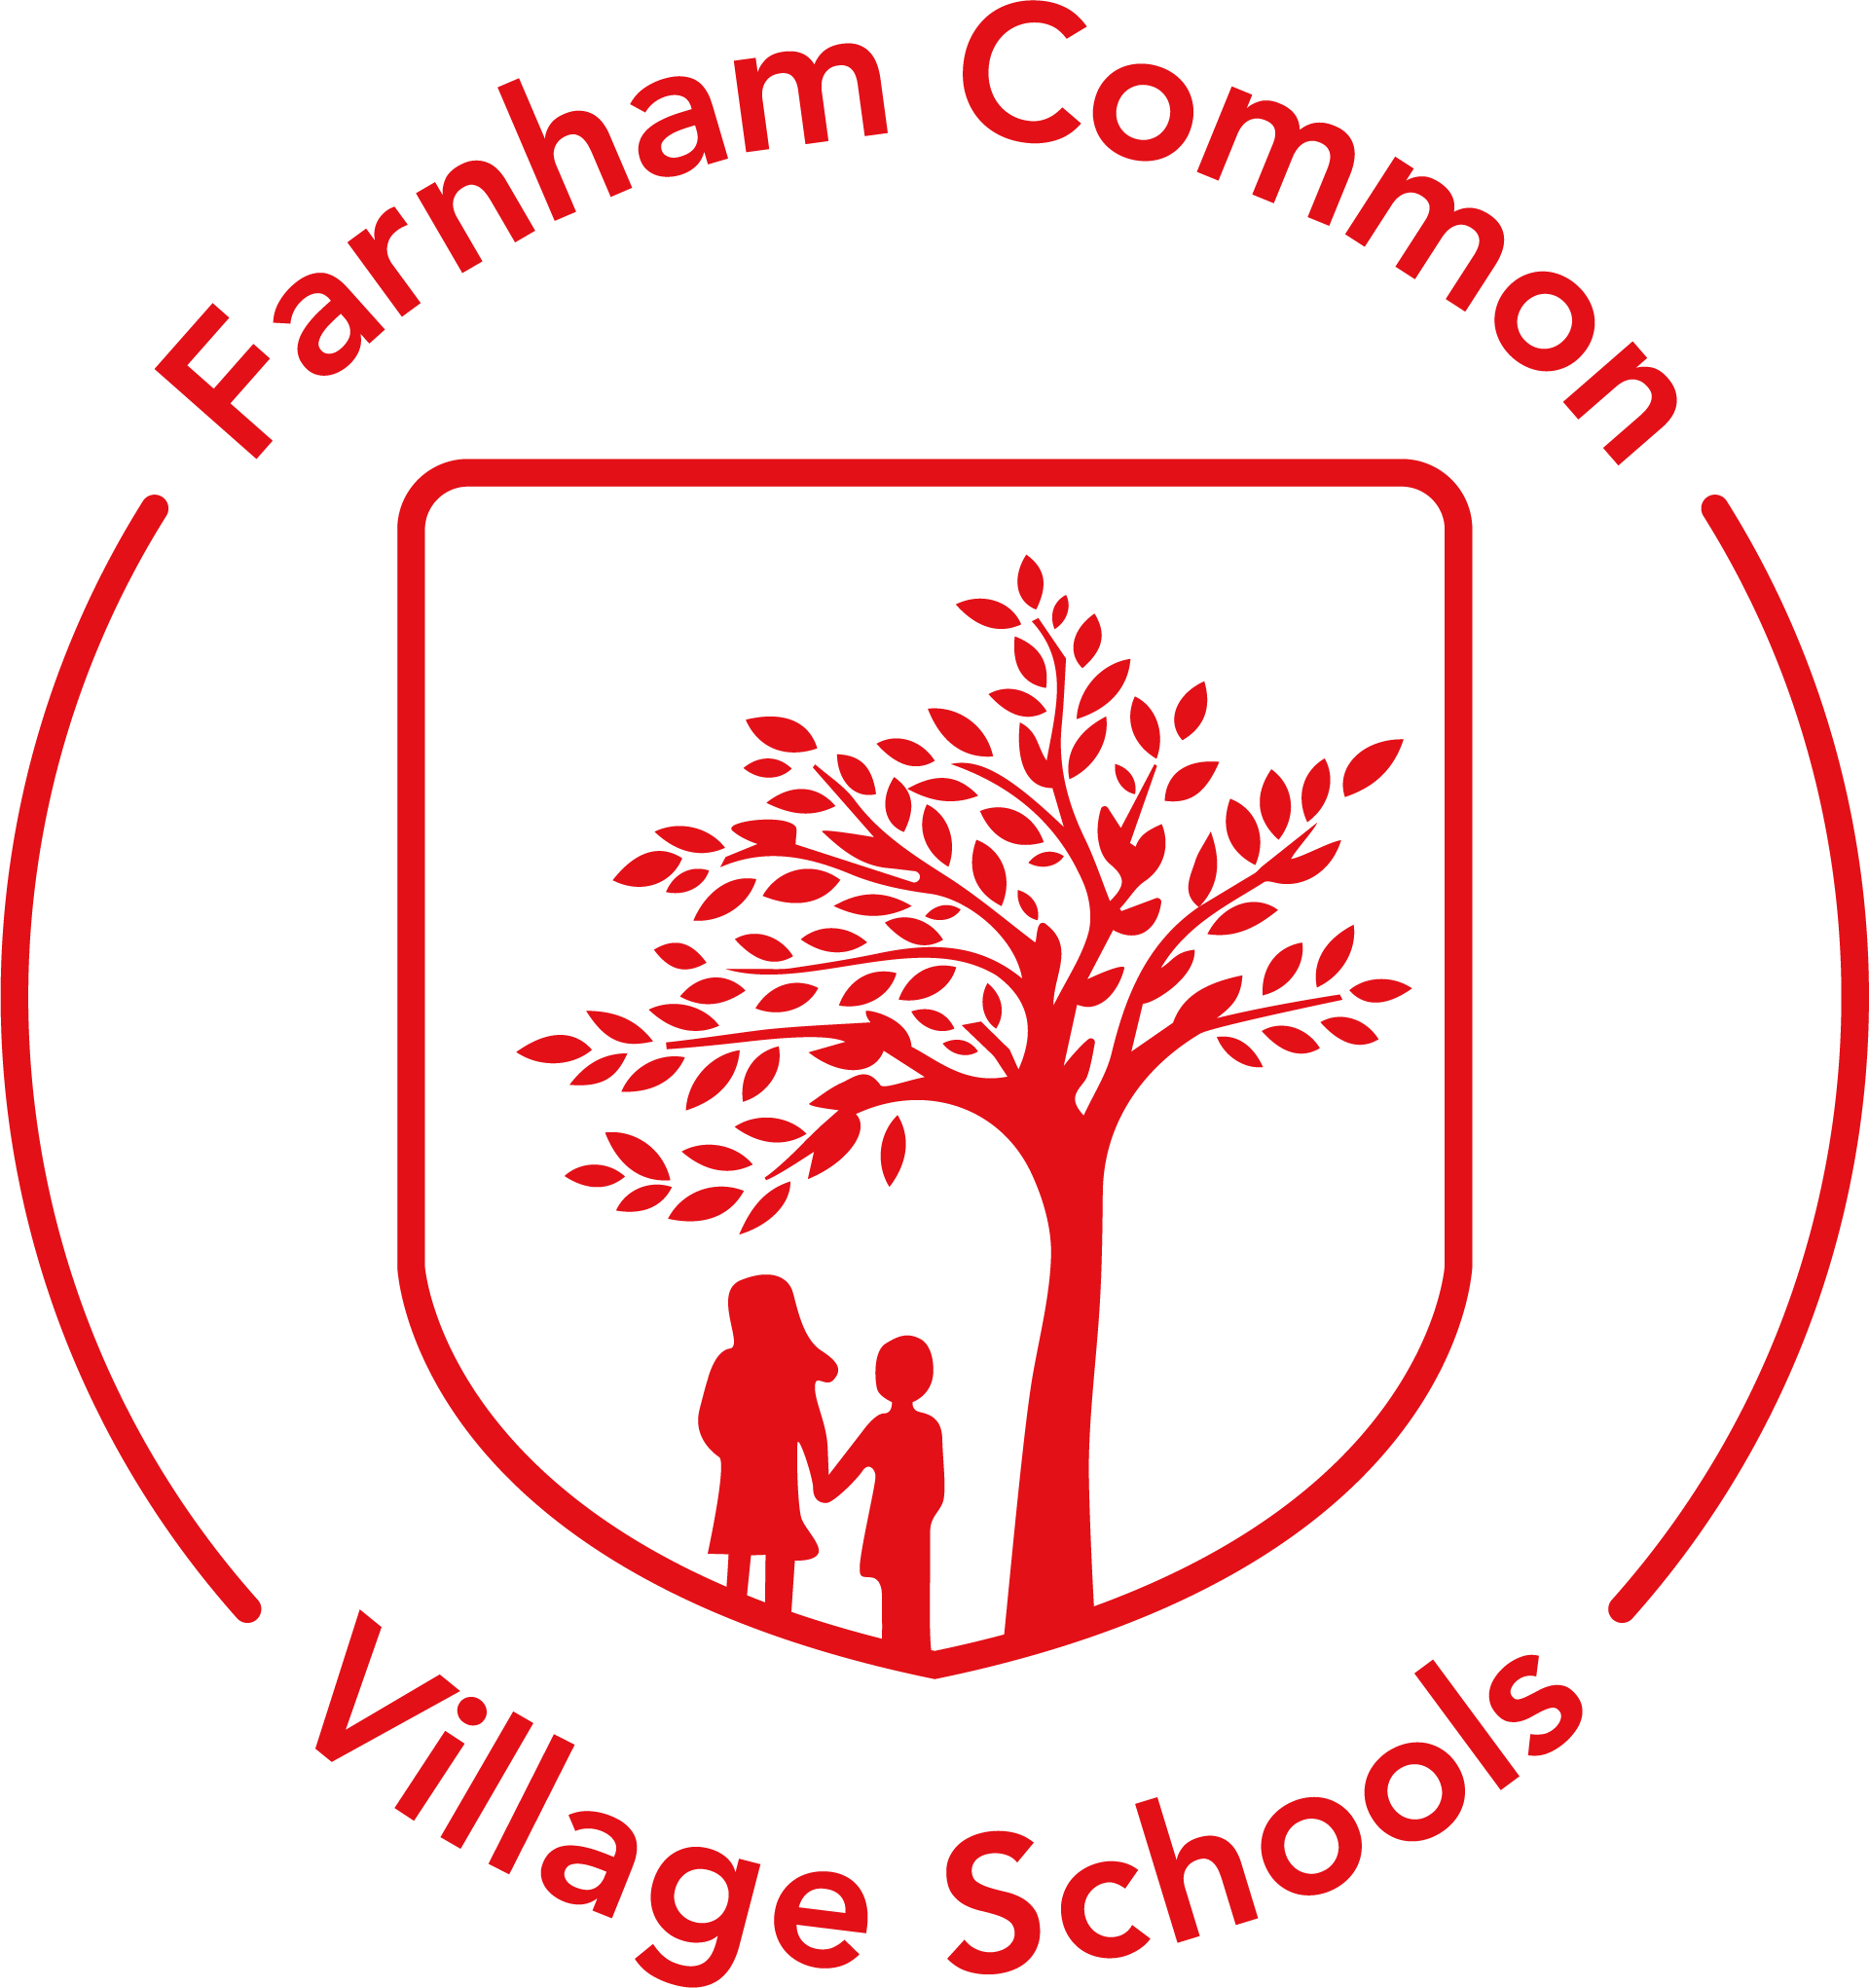 Farnham Common Village Schools Logo